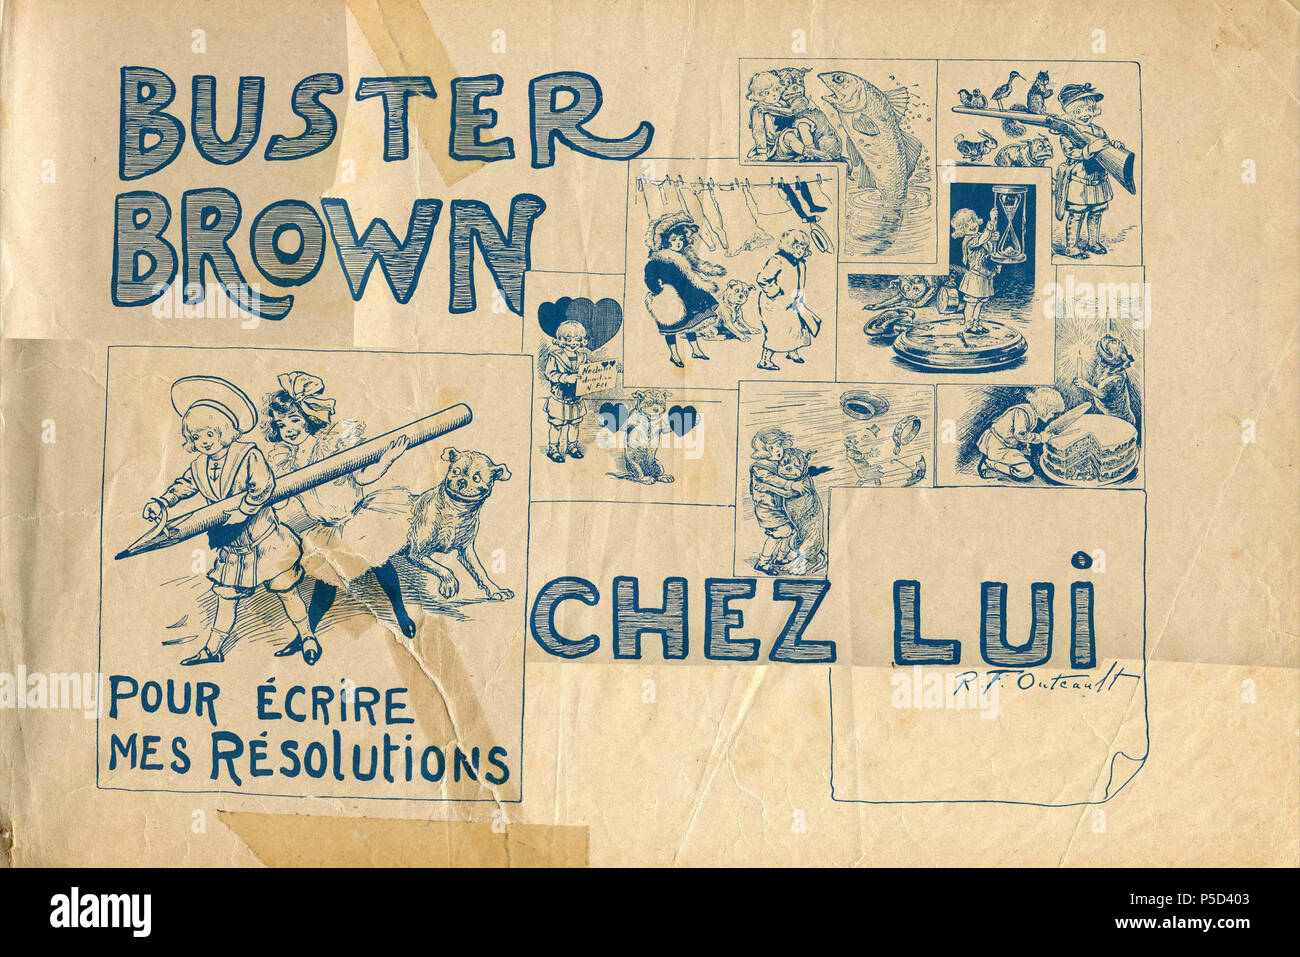 N/A. Français : Buster Brown chez lui . 13 November 2011. Richard Felton Outcault 6 - Buster Brown chez lui 00b - Stock Image